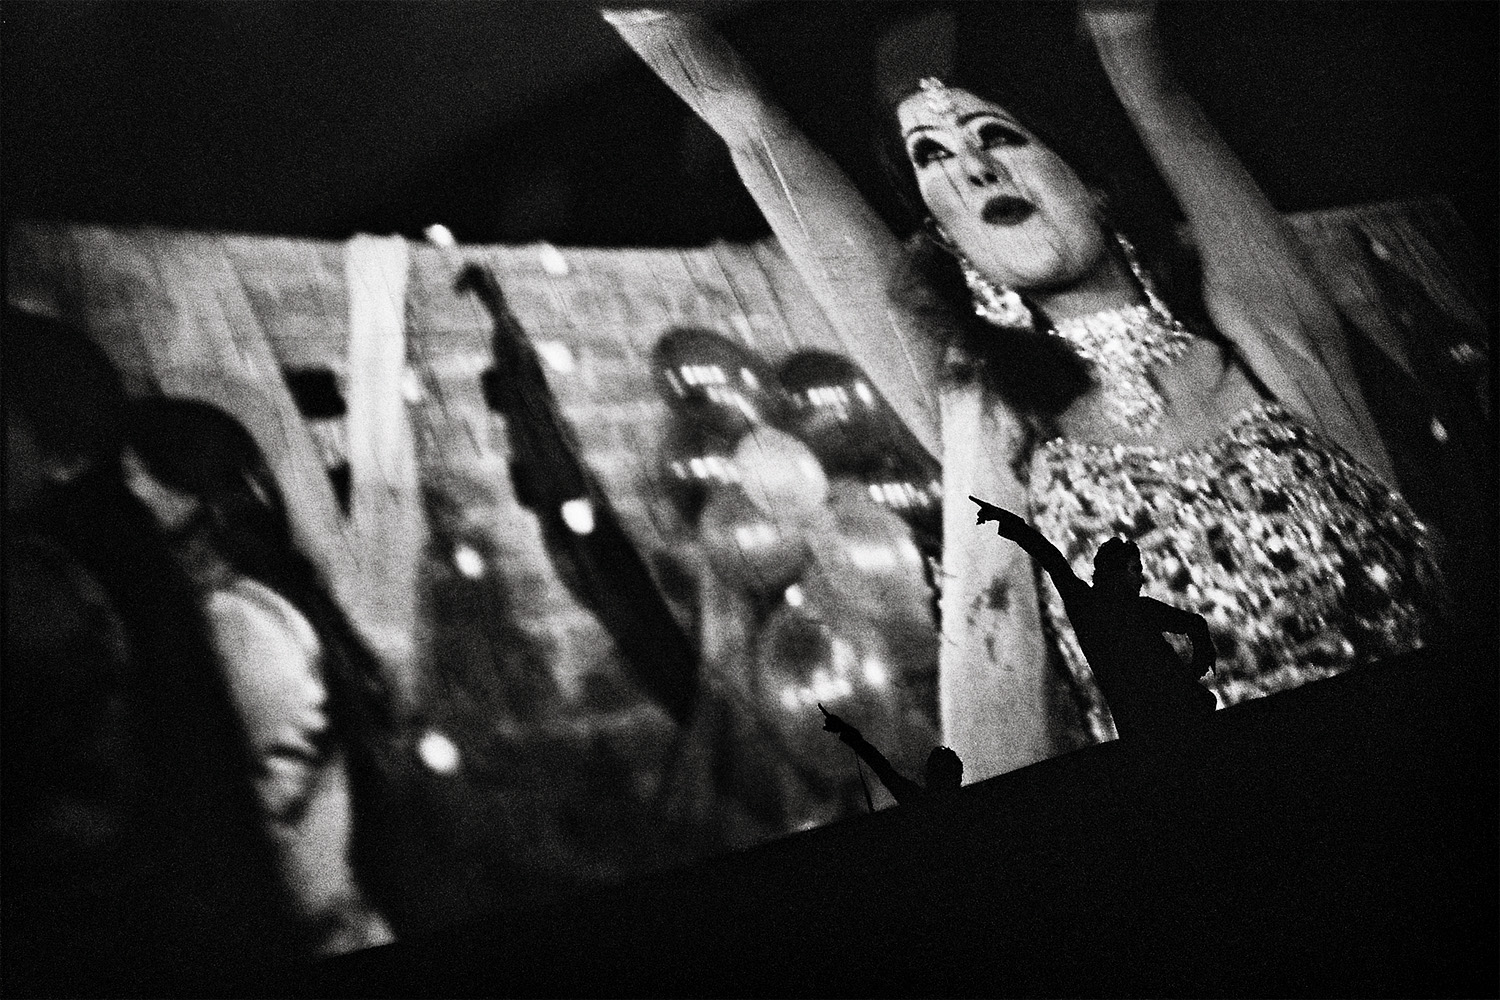 A Pashtun man dances on stage along to the musical number behind him on the screen. He is cheered on by the crowd.